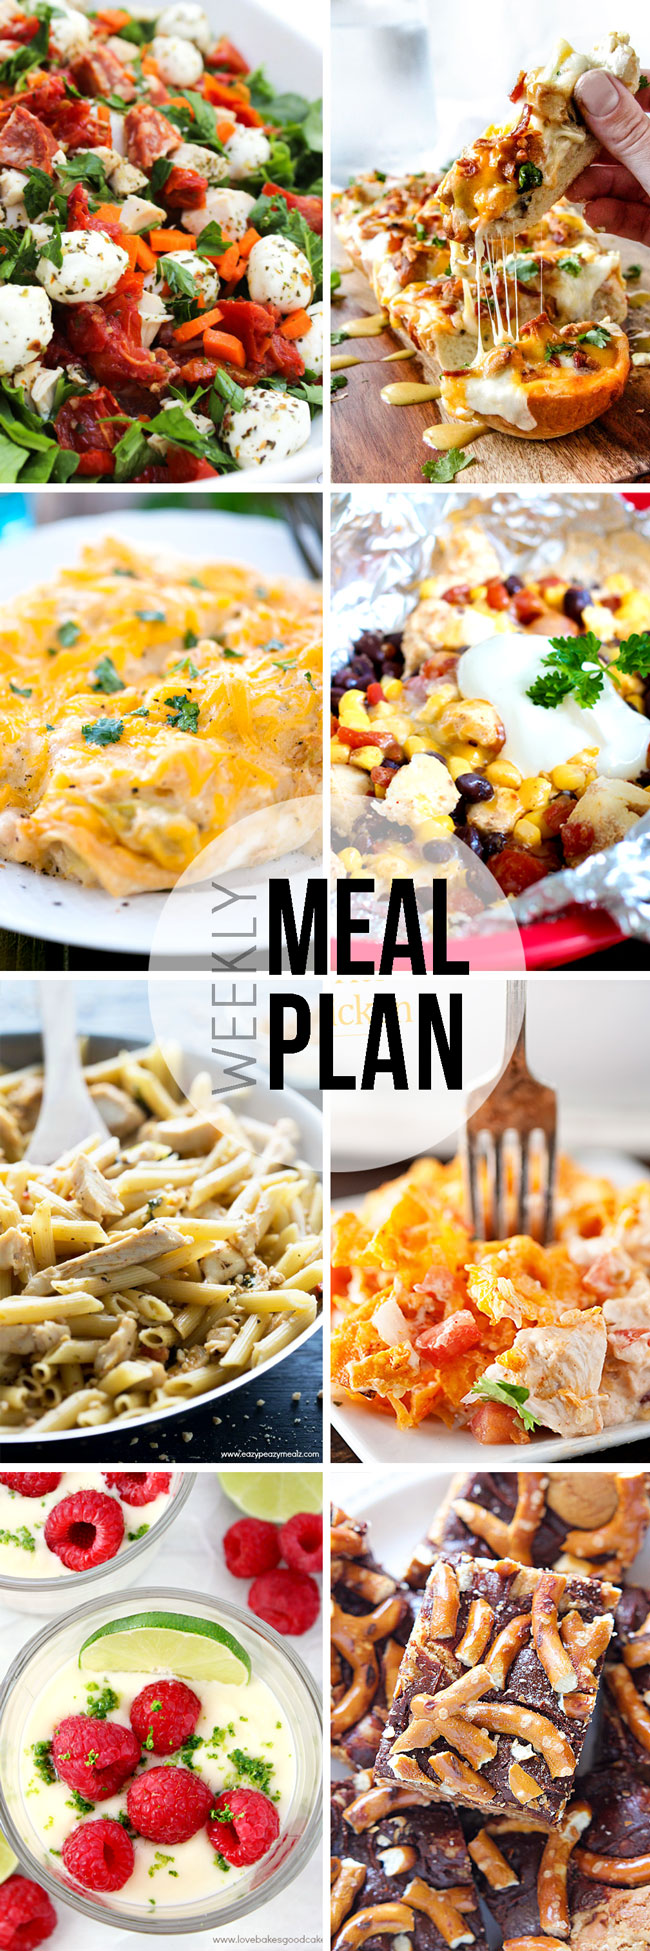 Meal-Plan---Pinterest-32